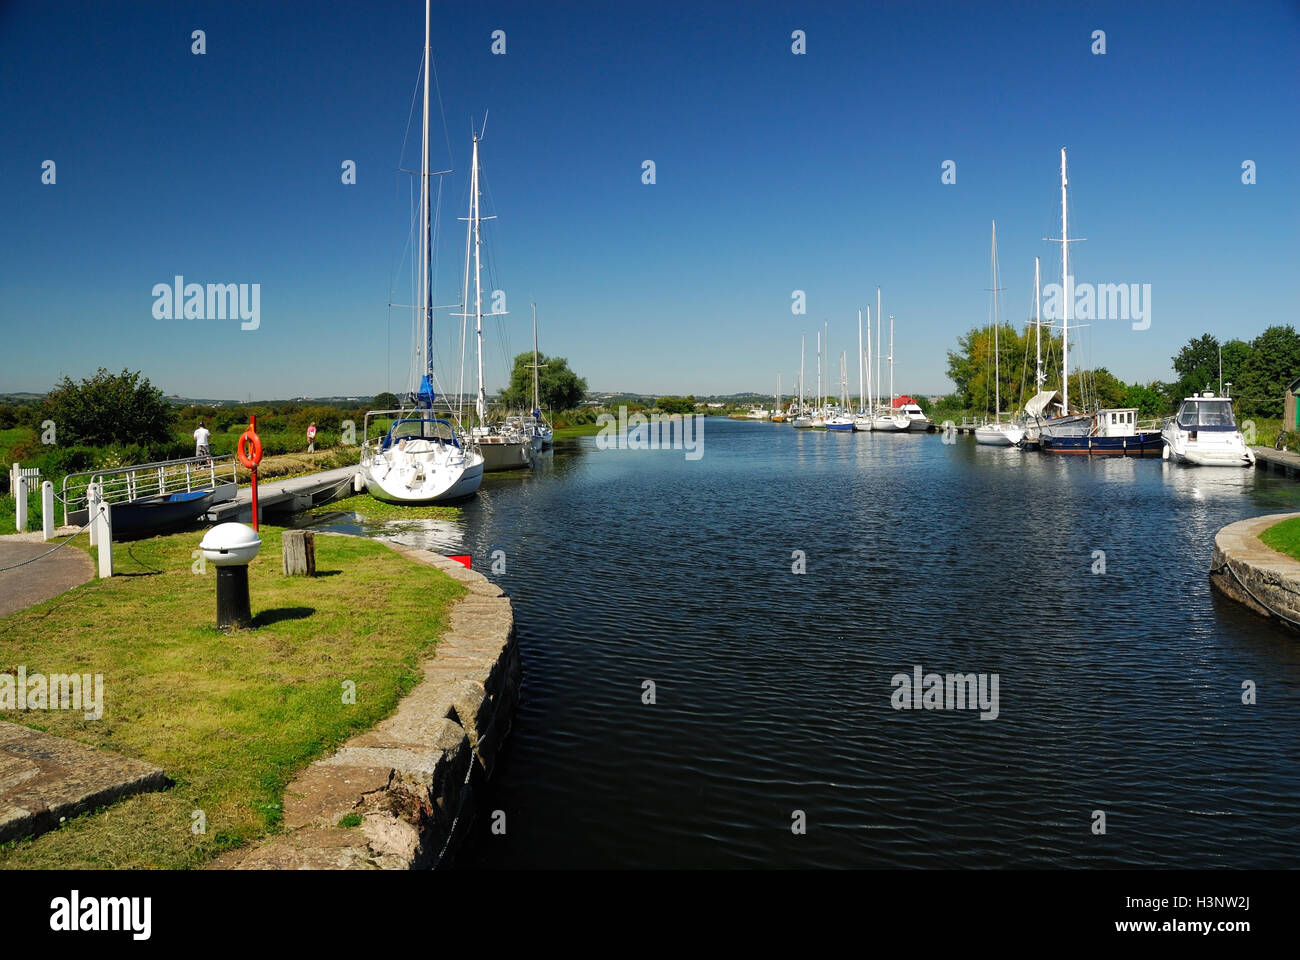 Boats moored alongside the Exeter canal near Turf Lock. - Stock Image